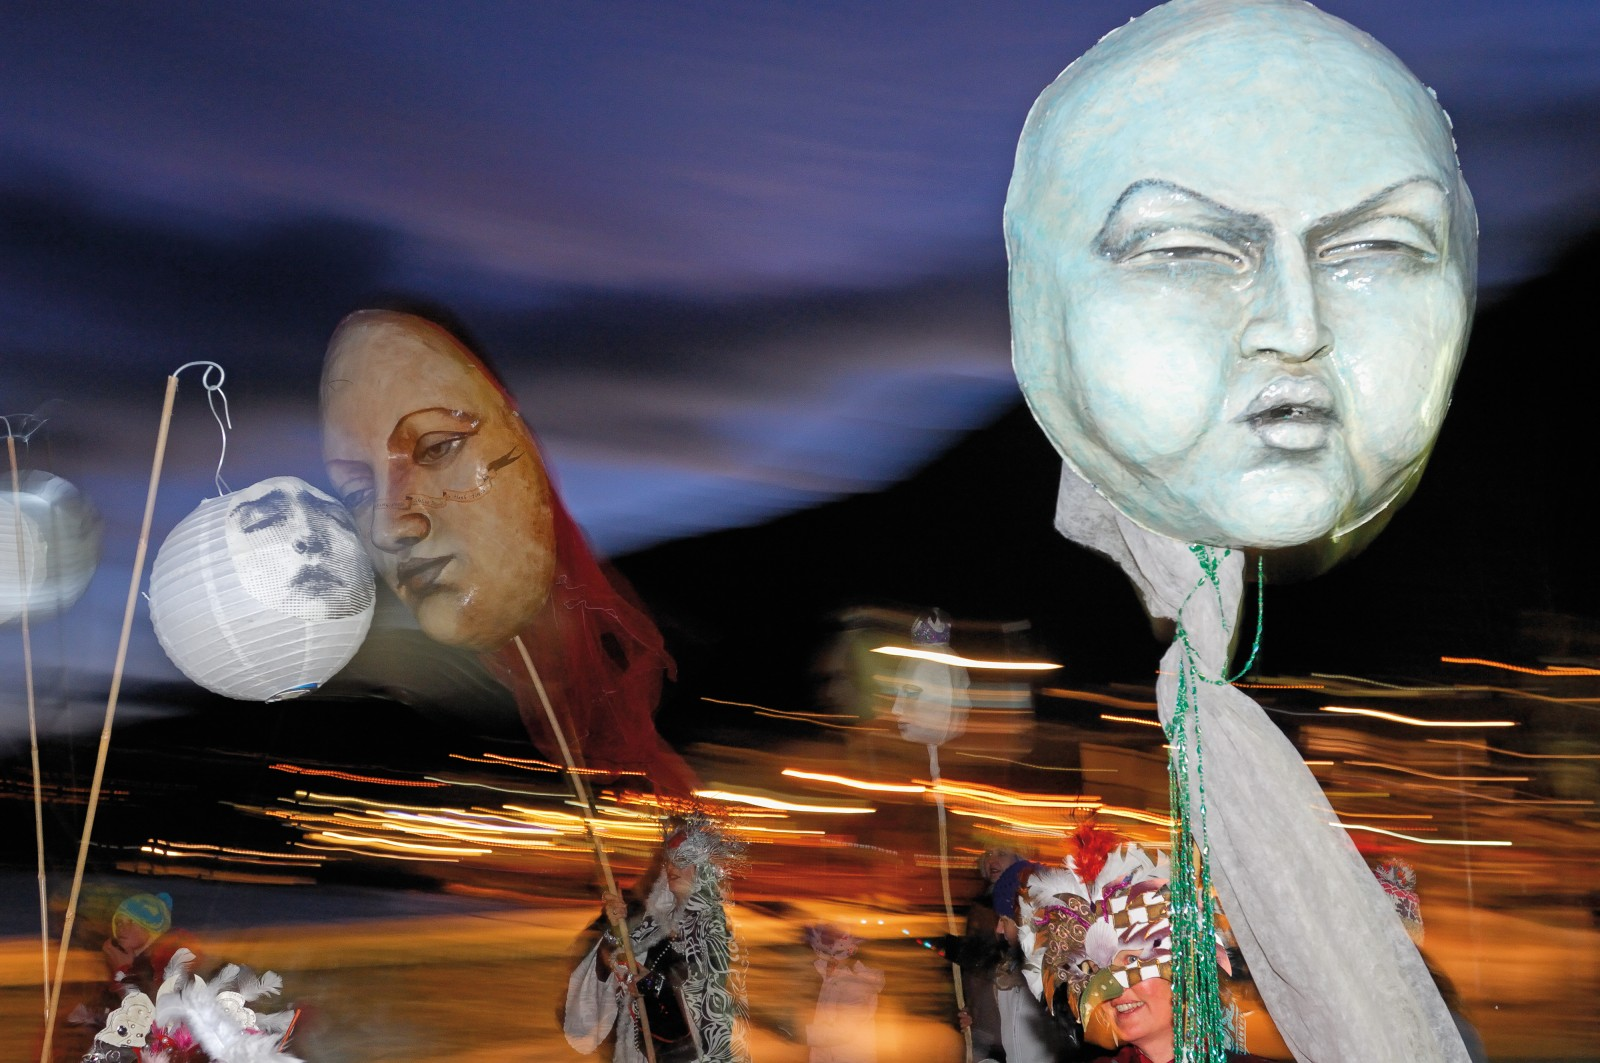 The Winter Festival culminates in a Rio-style Mardi Gras and ball, with enormous masks made by artists Donna Demente and Jeff Mitchell. It's symbolic not just of the carnival atmosphere pervading the town during this event, but also a resurgence in the arts and architectural identity of Queenstown.